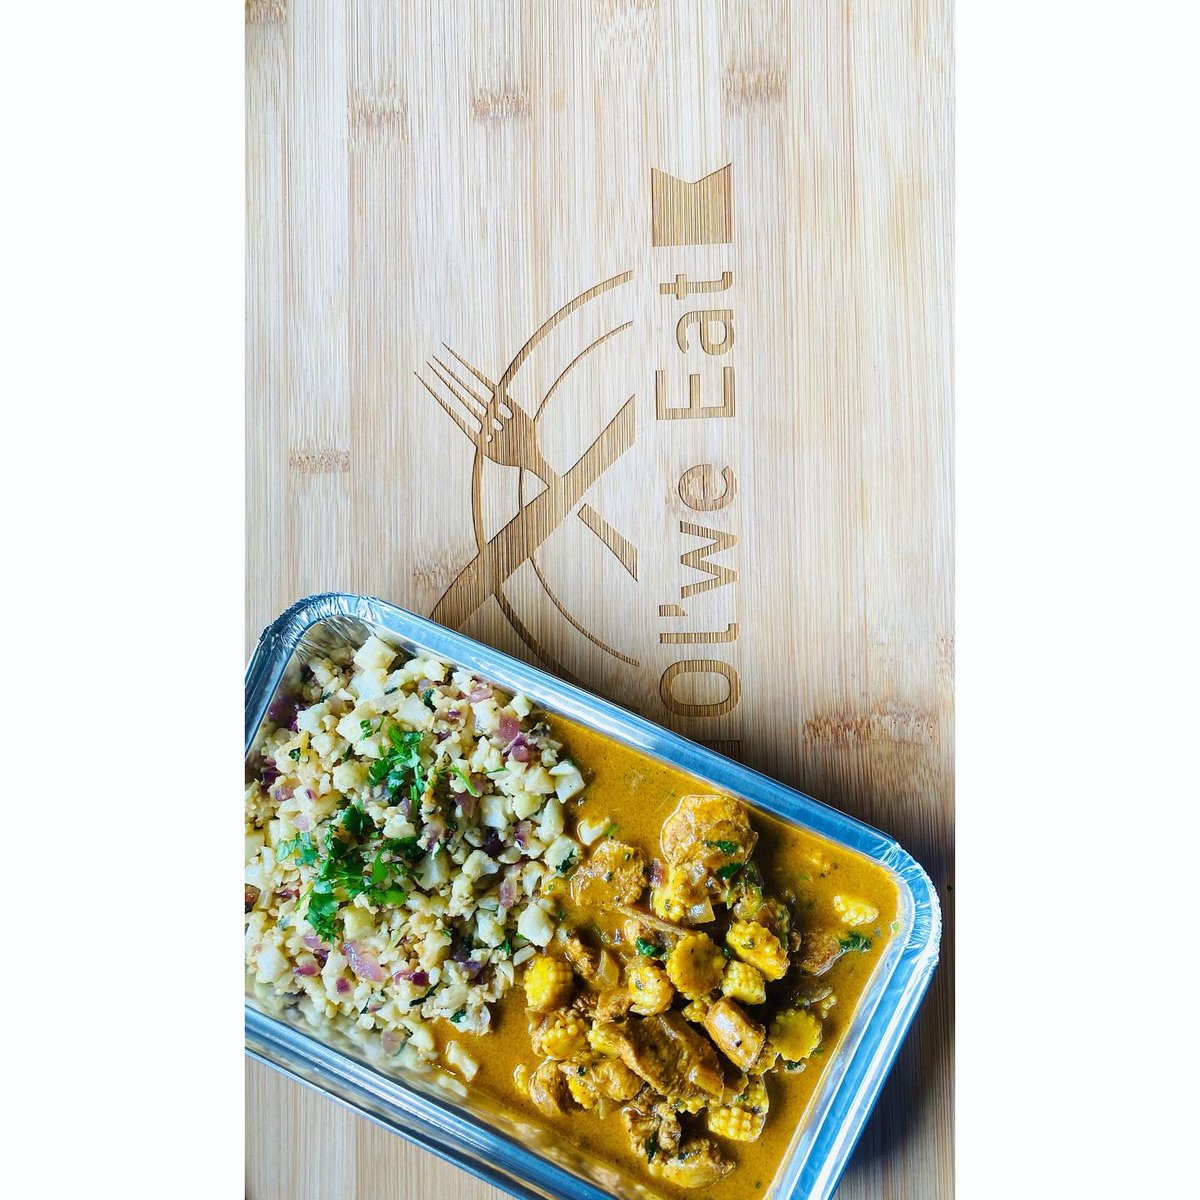 Tuesday: Coconut chicken curry replaced with cauliflower cous cous  Instead of using rice if you cutting down on starch.  Ingredients: @WOOLWORTHS_SA @WWTaste   #foodie #tuesdaymotivations #cauliflowercouscous #ordernow #food #chefwork #chef #homecookedmeals#👩🏽‍🍳